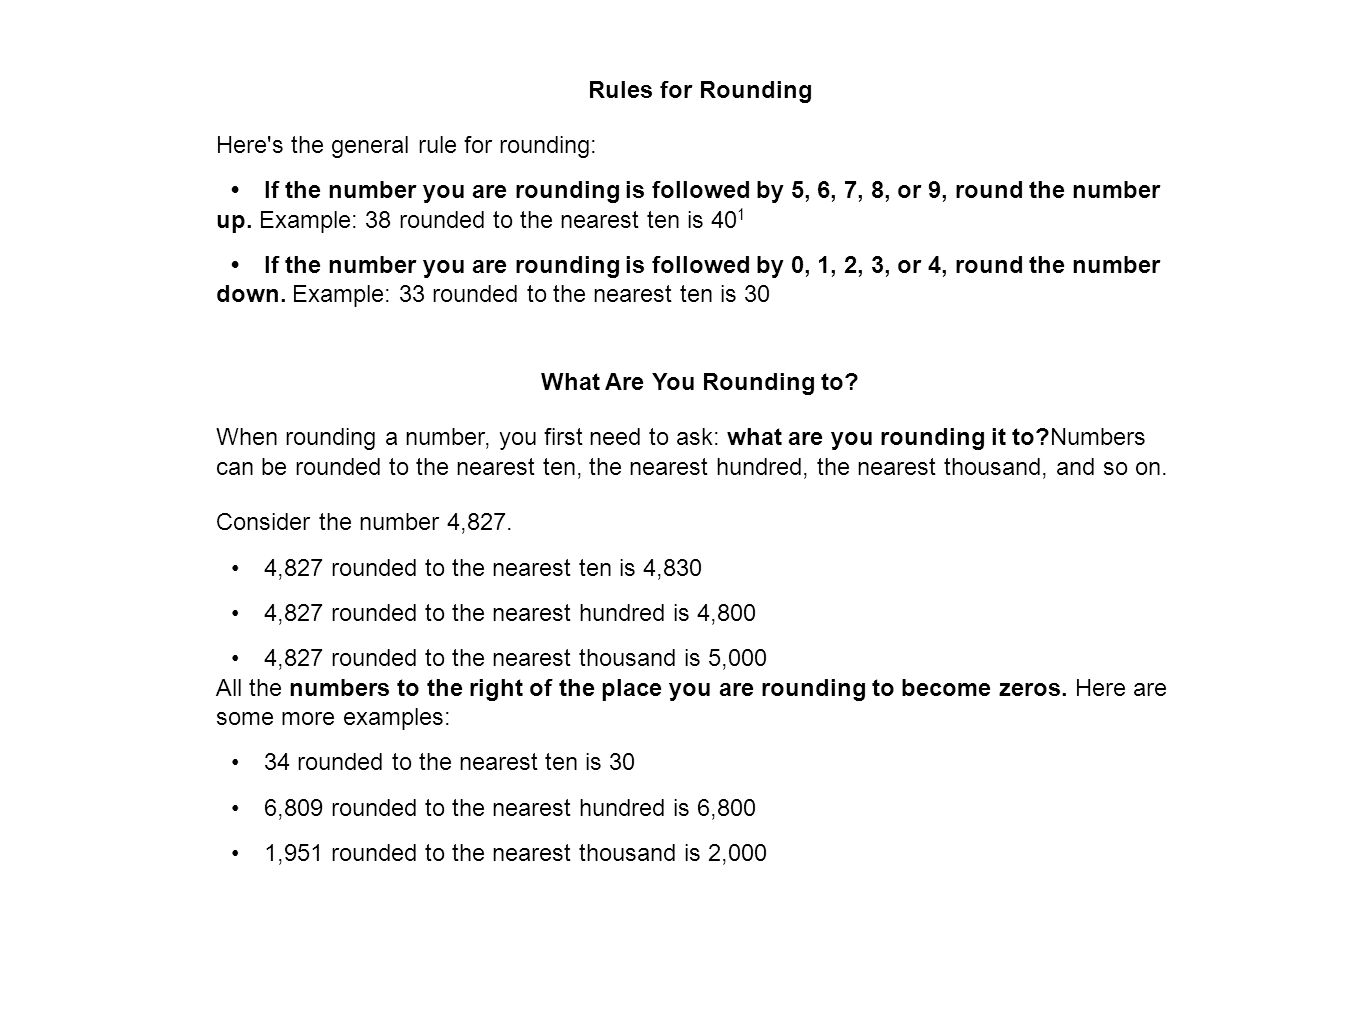 Rules for Rounding Here s the general rule for rounding: If the number you are rounding is followed by 5, 6, 7, 8, or 9, round the number up.